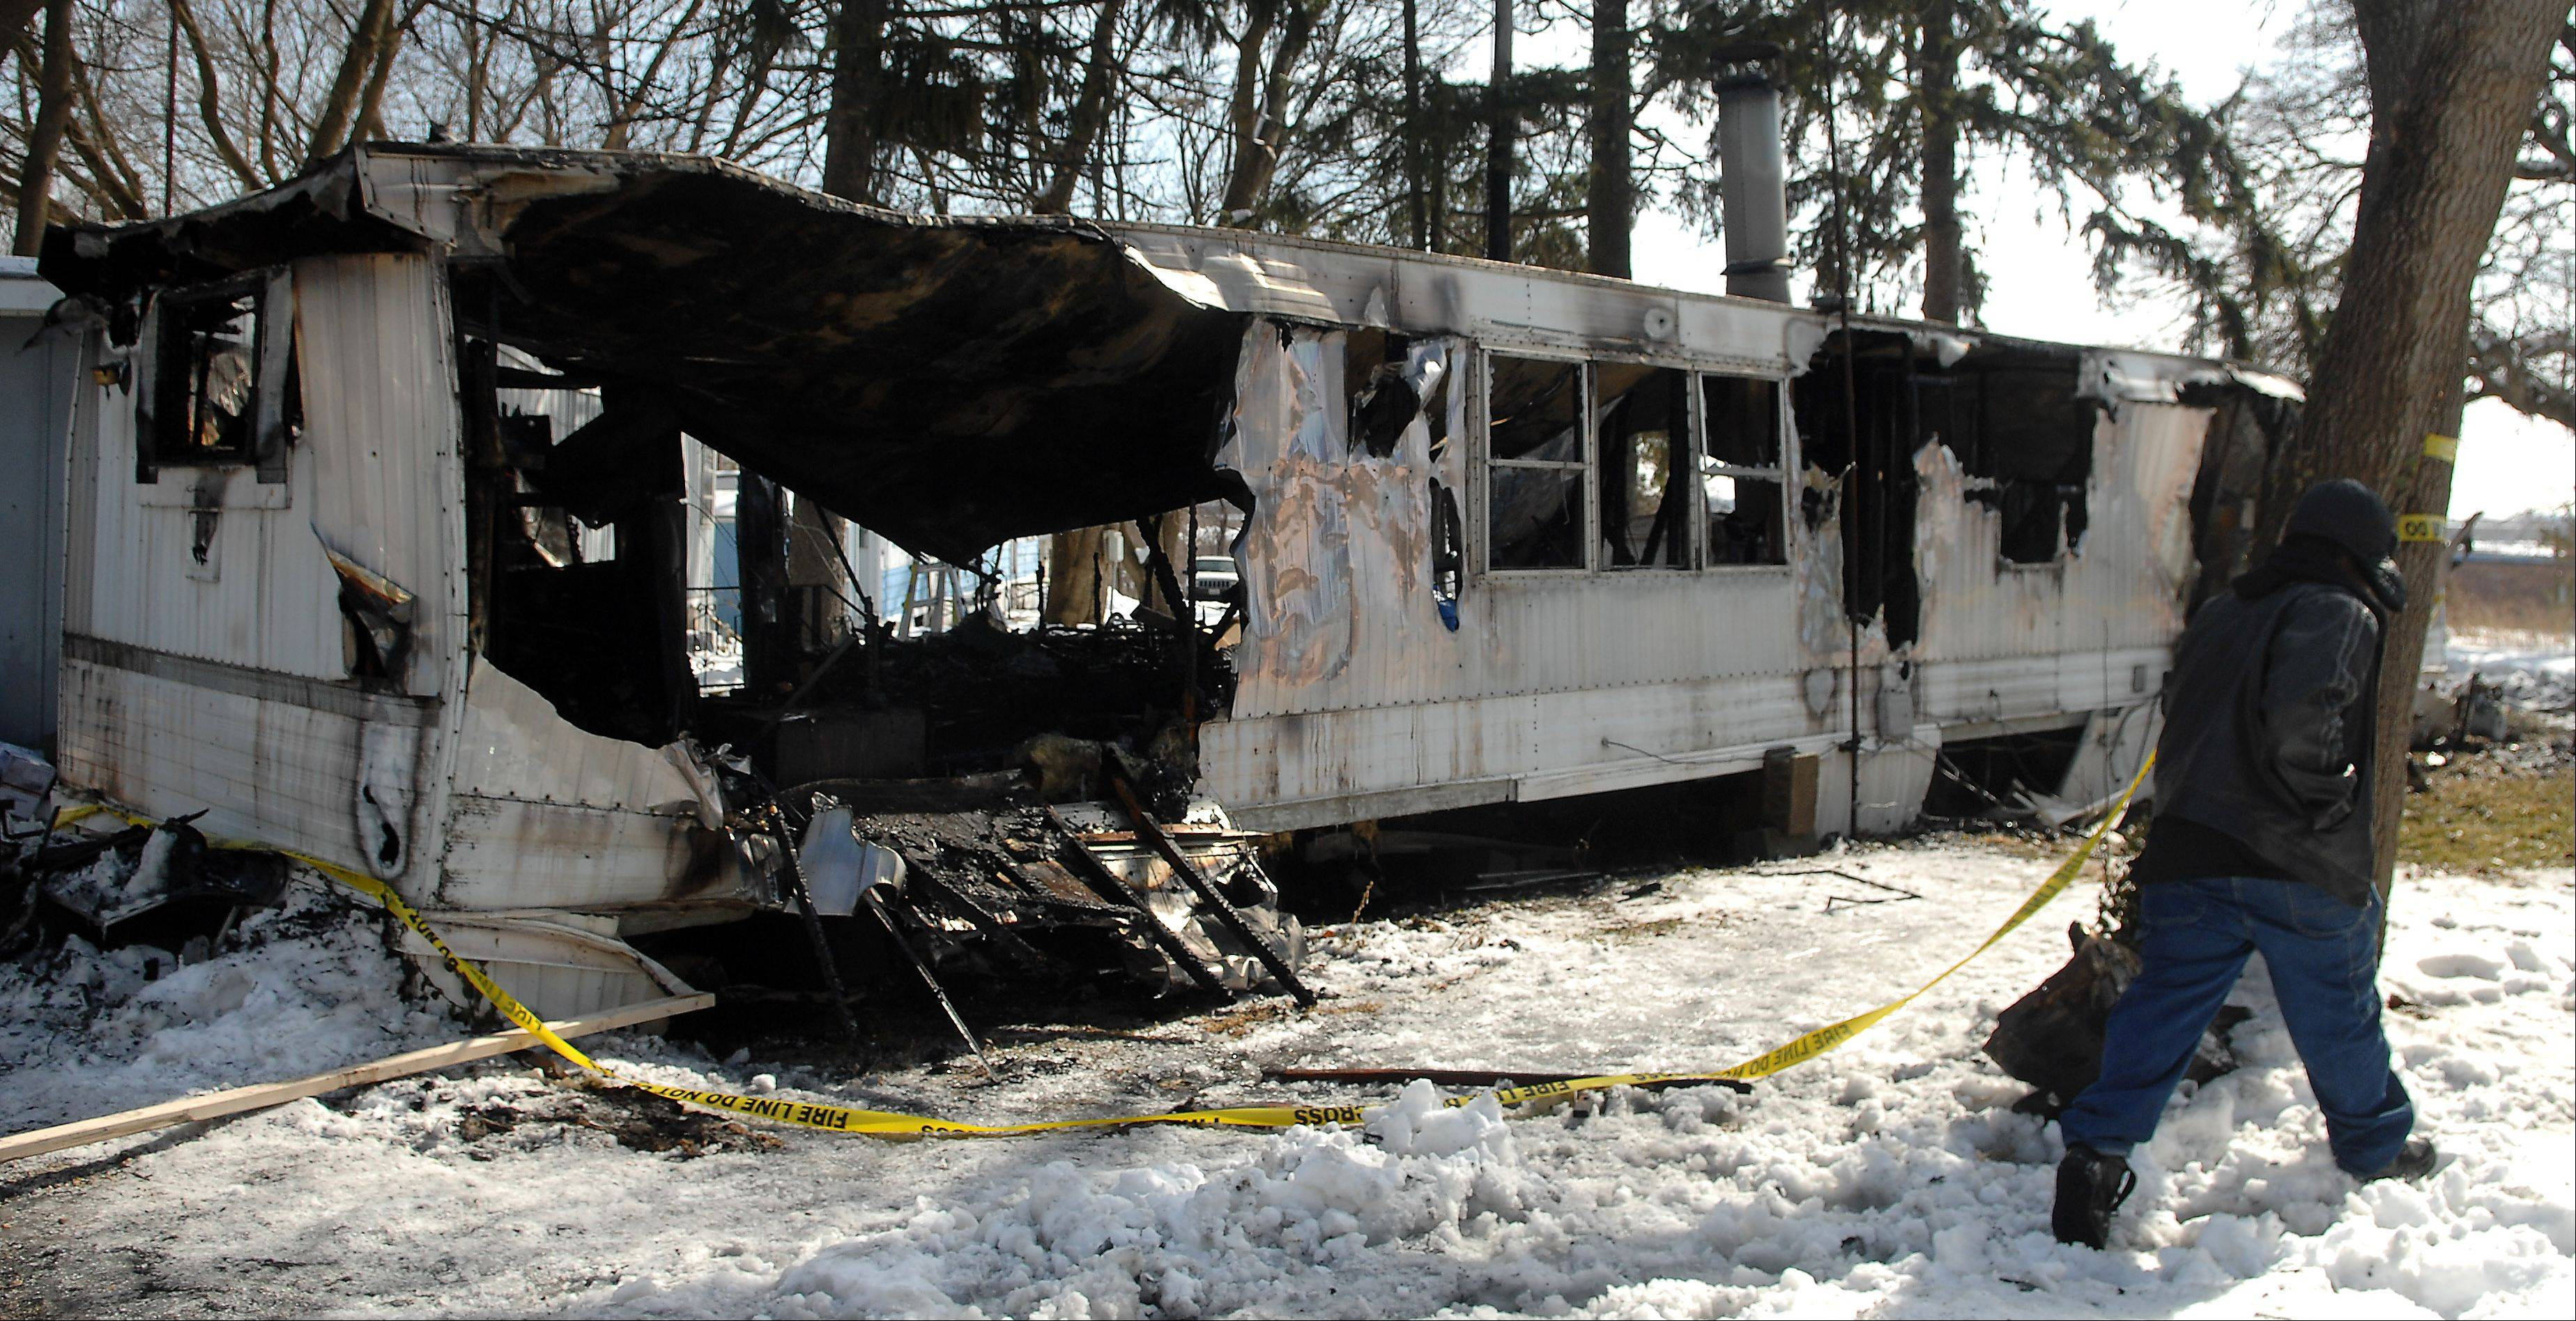 This mobile home in Elgin was destroyed in a fire early Friday; a 36-year-old man was found dead inside.